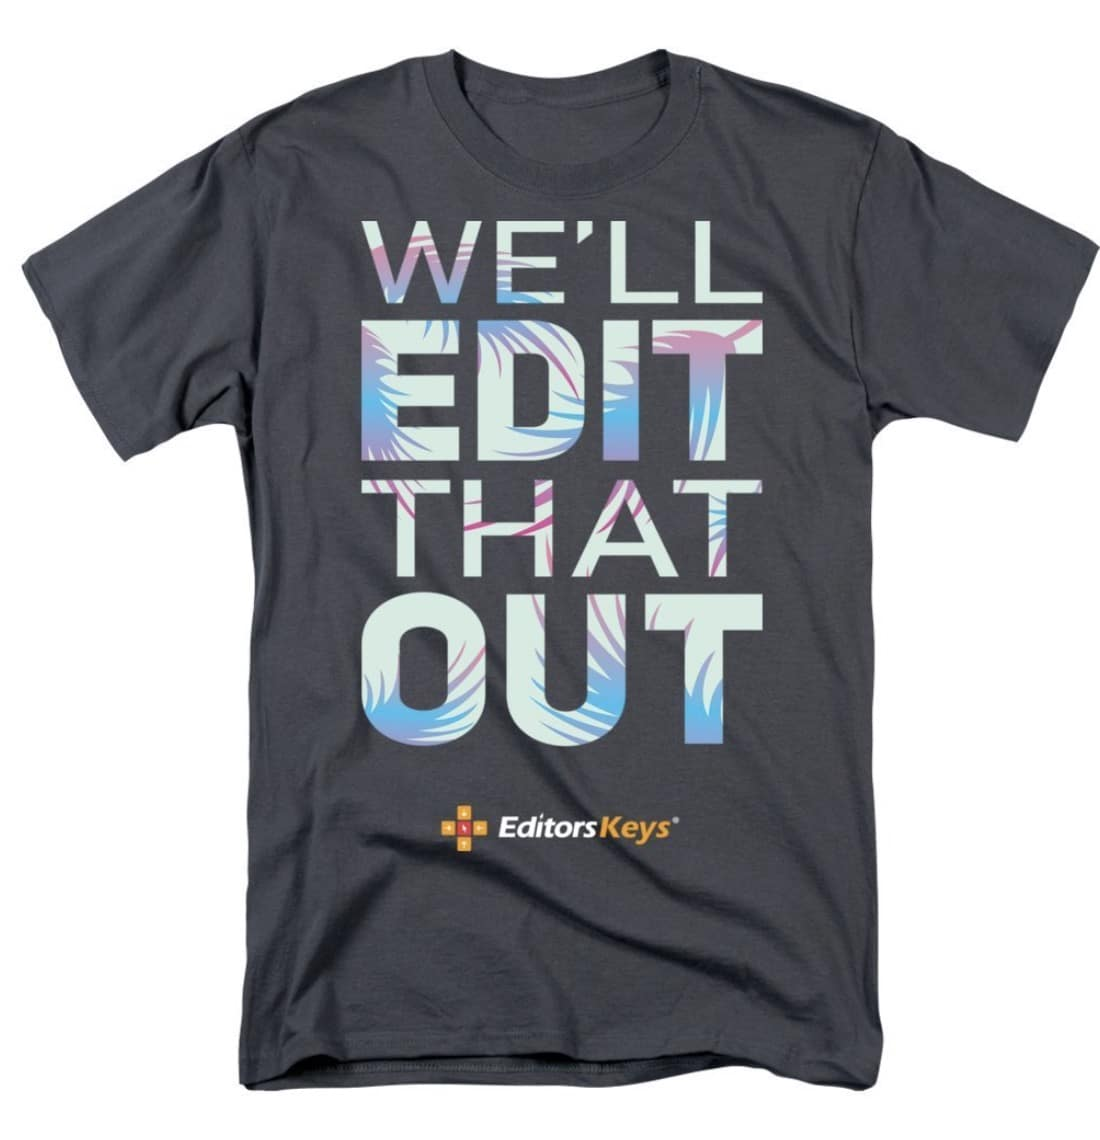 Christmas Gift Ideas for the Editor - 2019, the 10 Year Edition 37